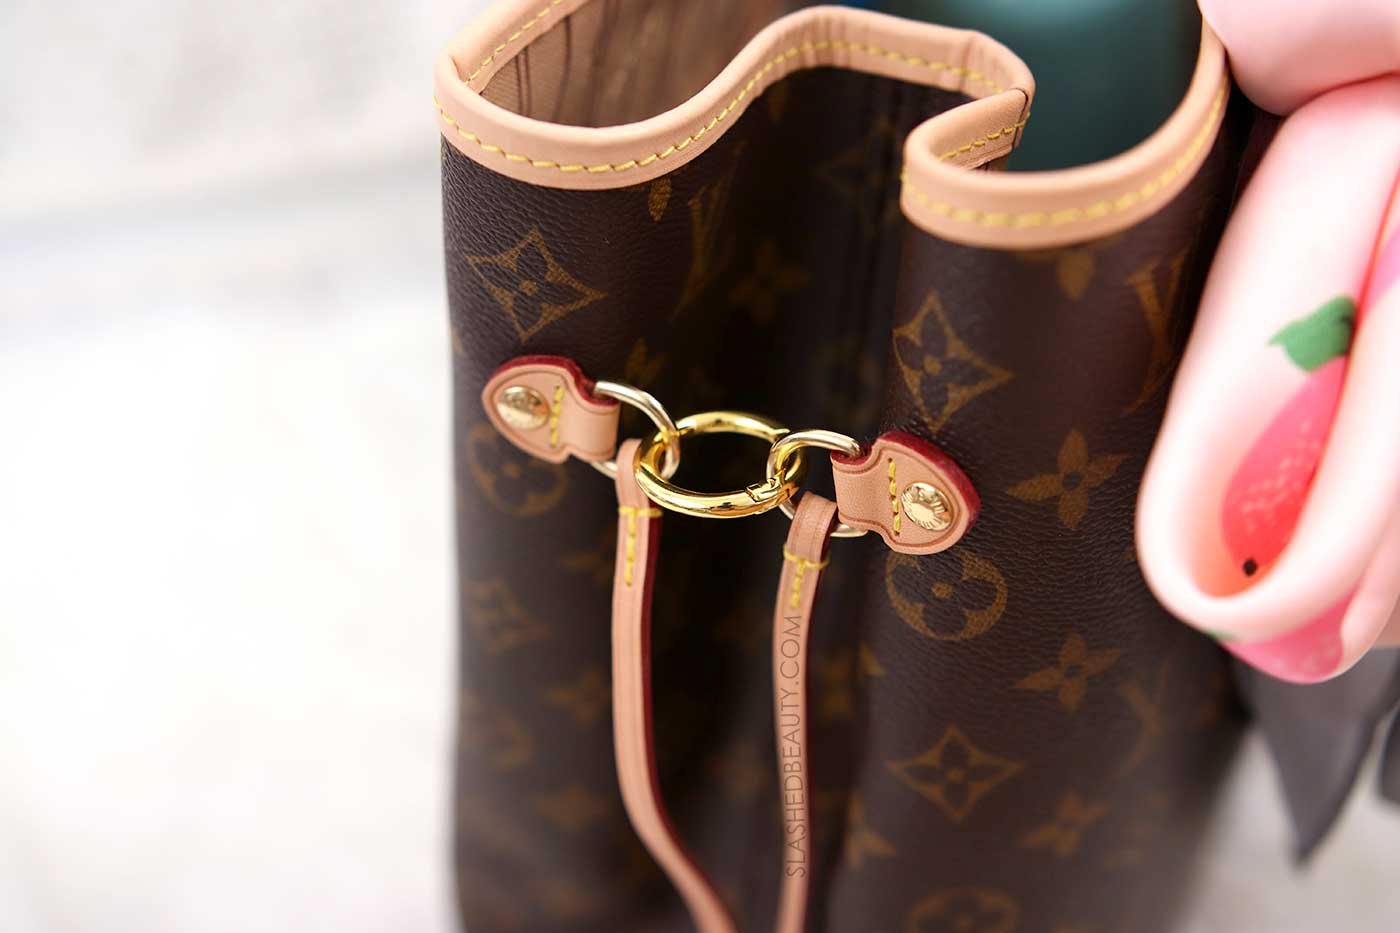 How to keep the Neverfull cinched with small rings | 5 Affordable Handbag Accessories for the Louis Vuitton Neverfull | Slashed Beauty